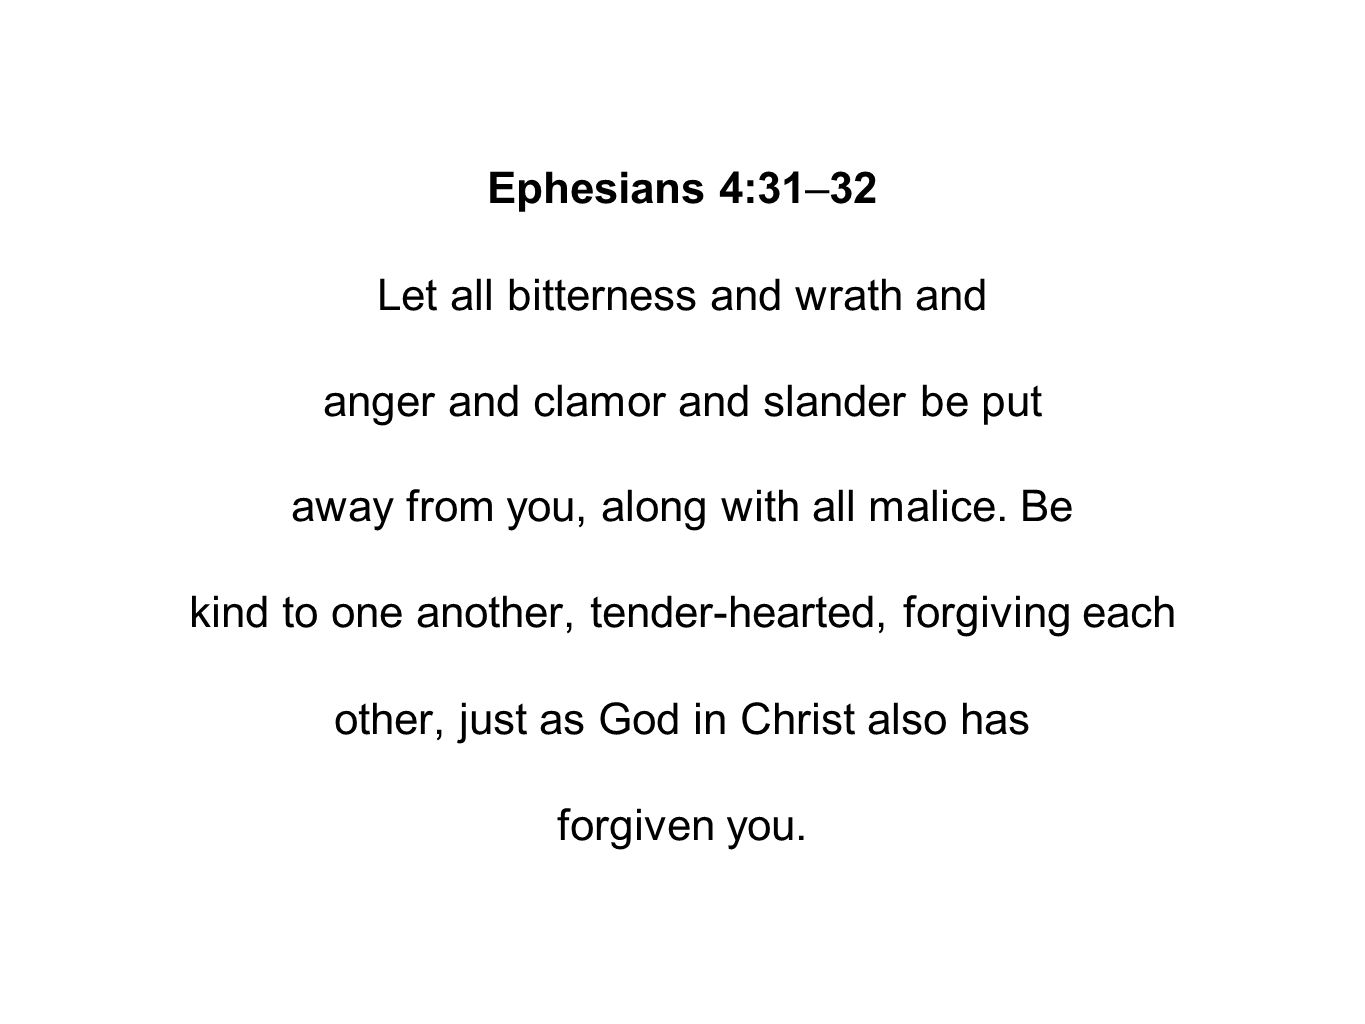 Ephesians 4:31–32 Let all bitterness and wrath and anger and clamor and slander be put away from you, along with all malice.